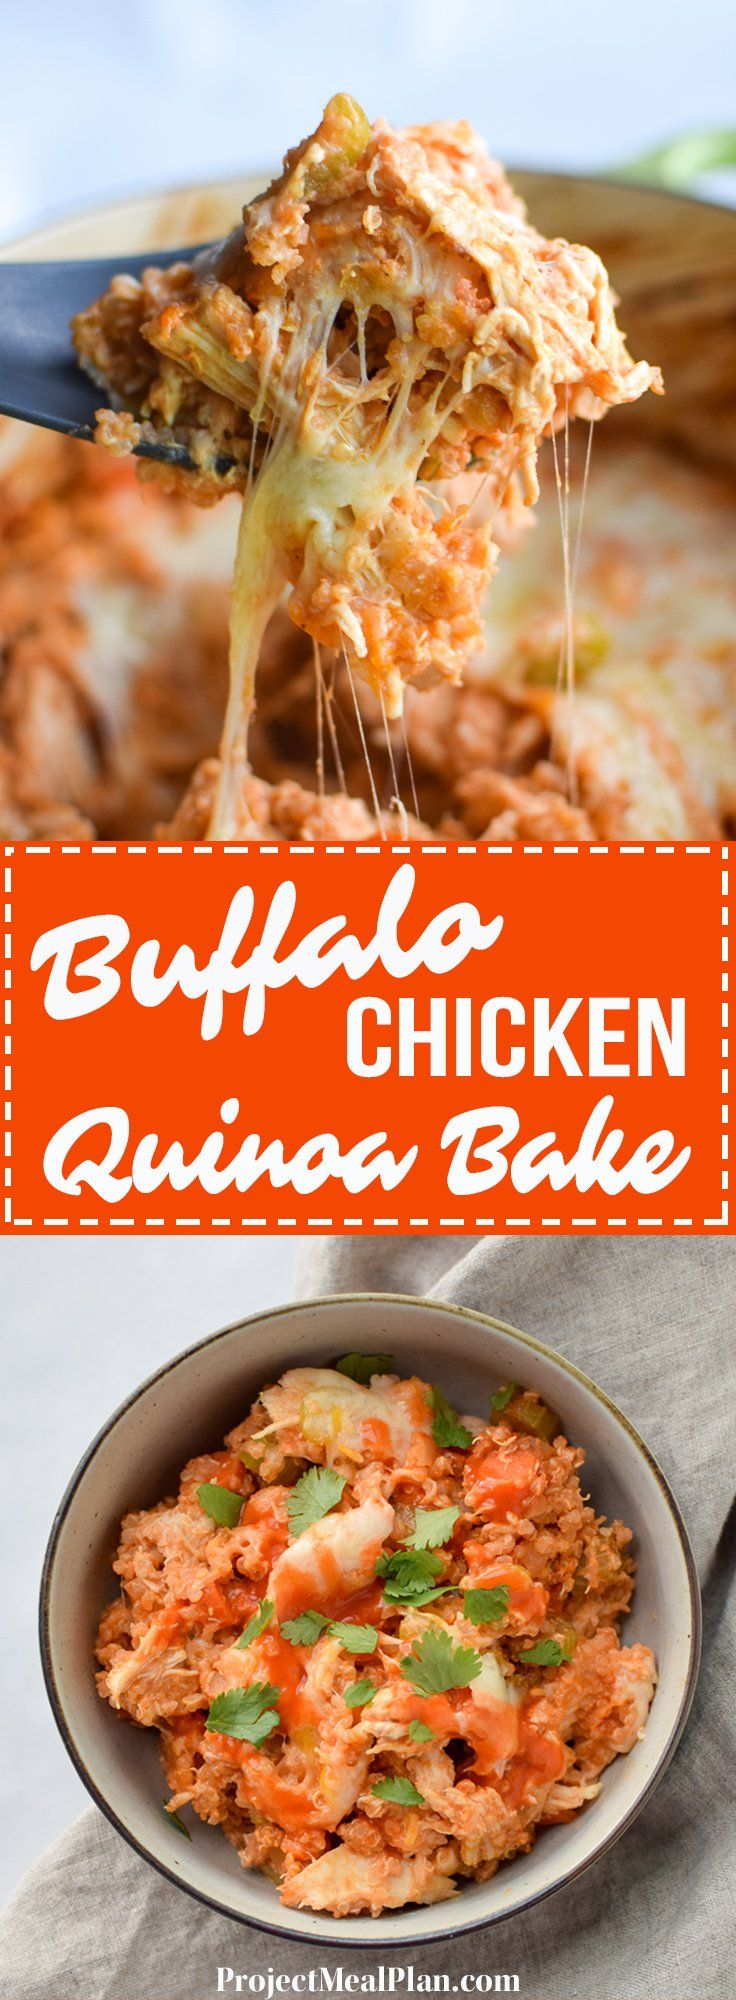 Photo of Buffalo Chicken Quinoa Bake